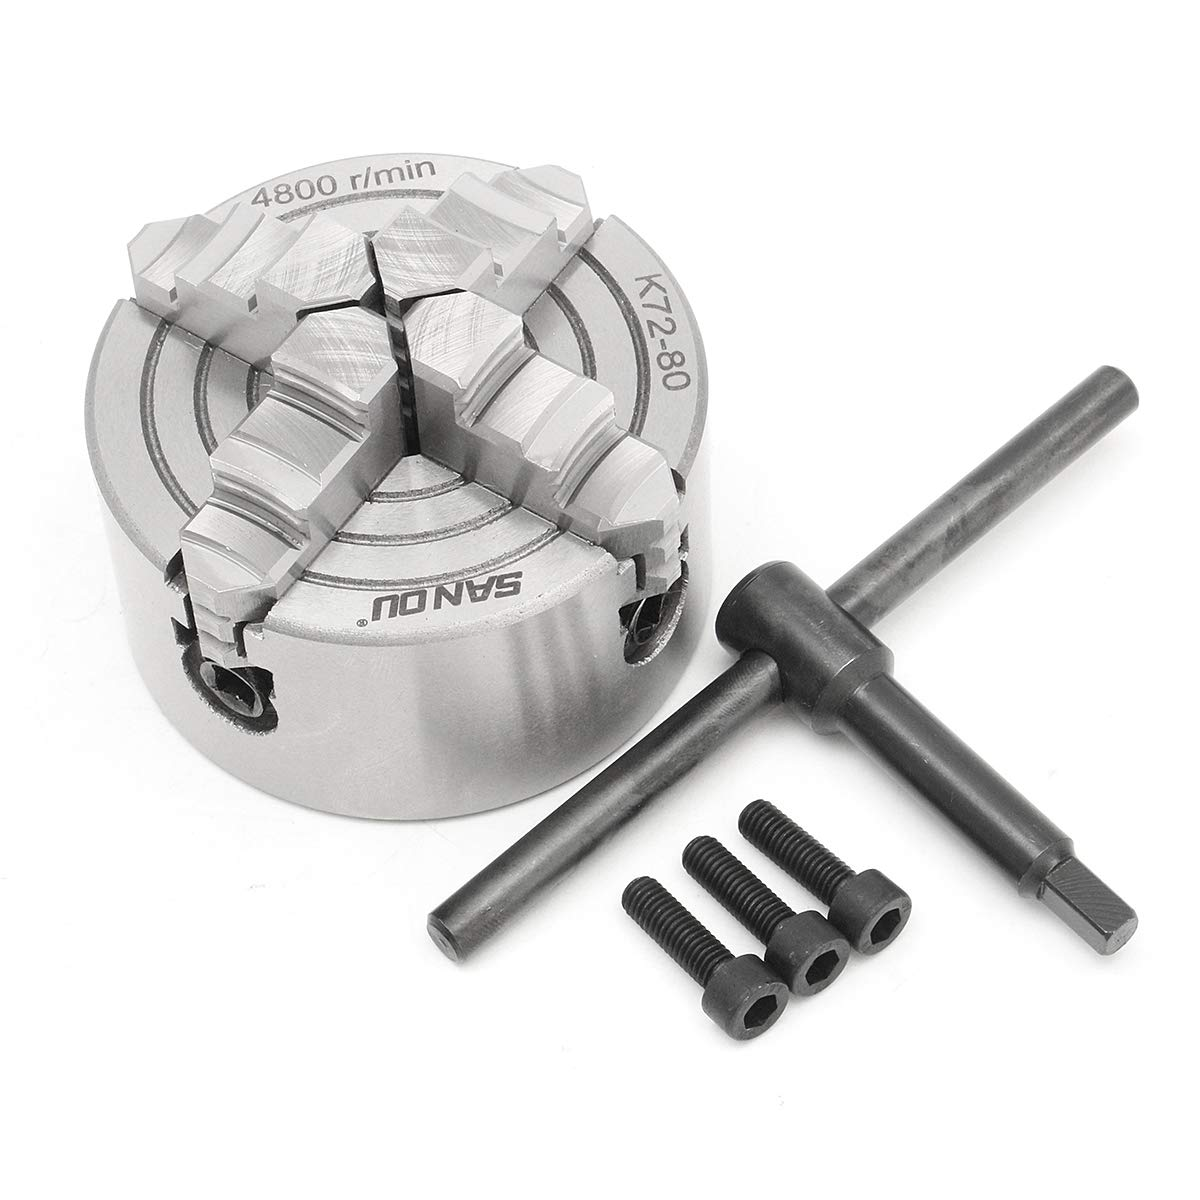 CoCocina SANOU K72 Lathe Chuck 80/100/125mm 4 Jaw Independent Hardened Reversible Tool - 80mm